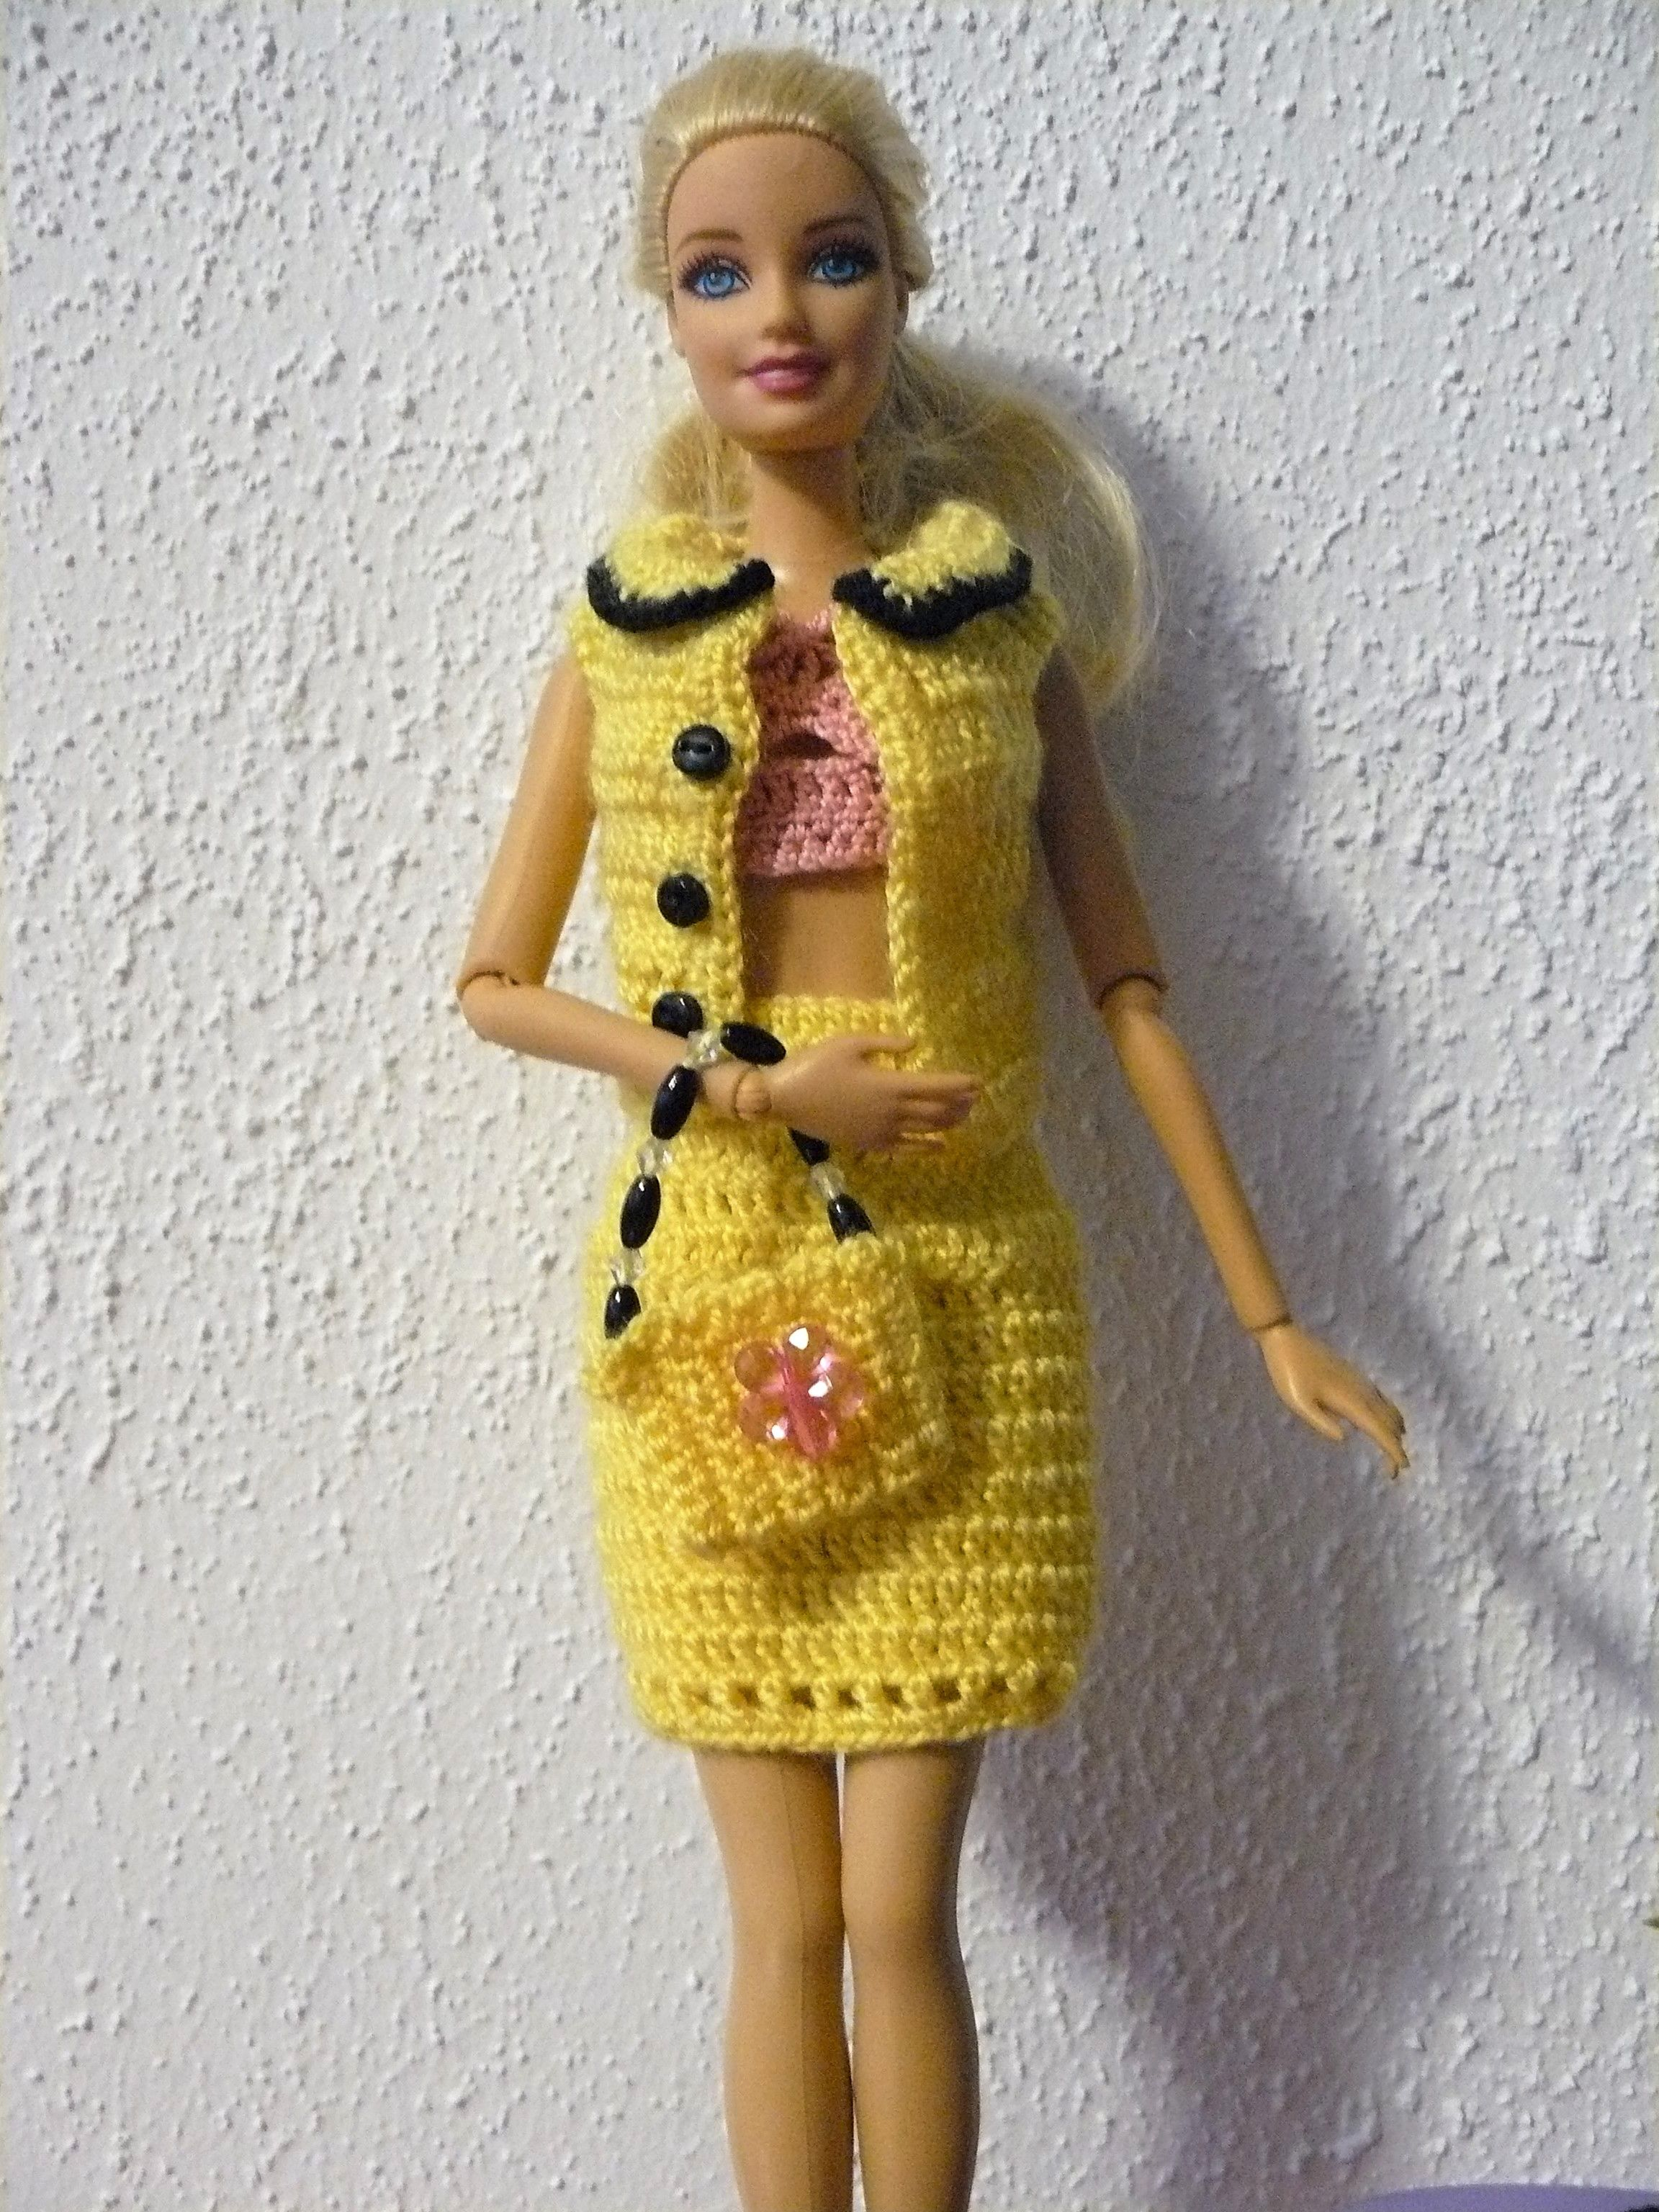 Barbie Crochetubranko Barbie Barbie Pinterest Häkeln